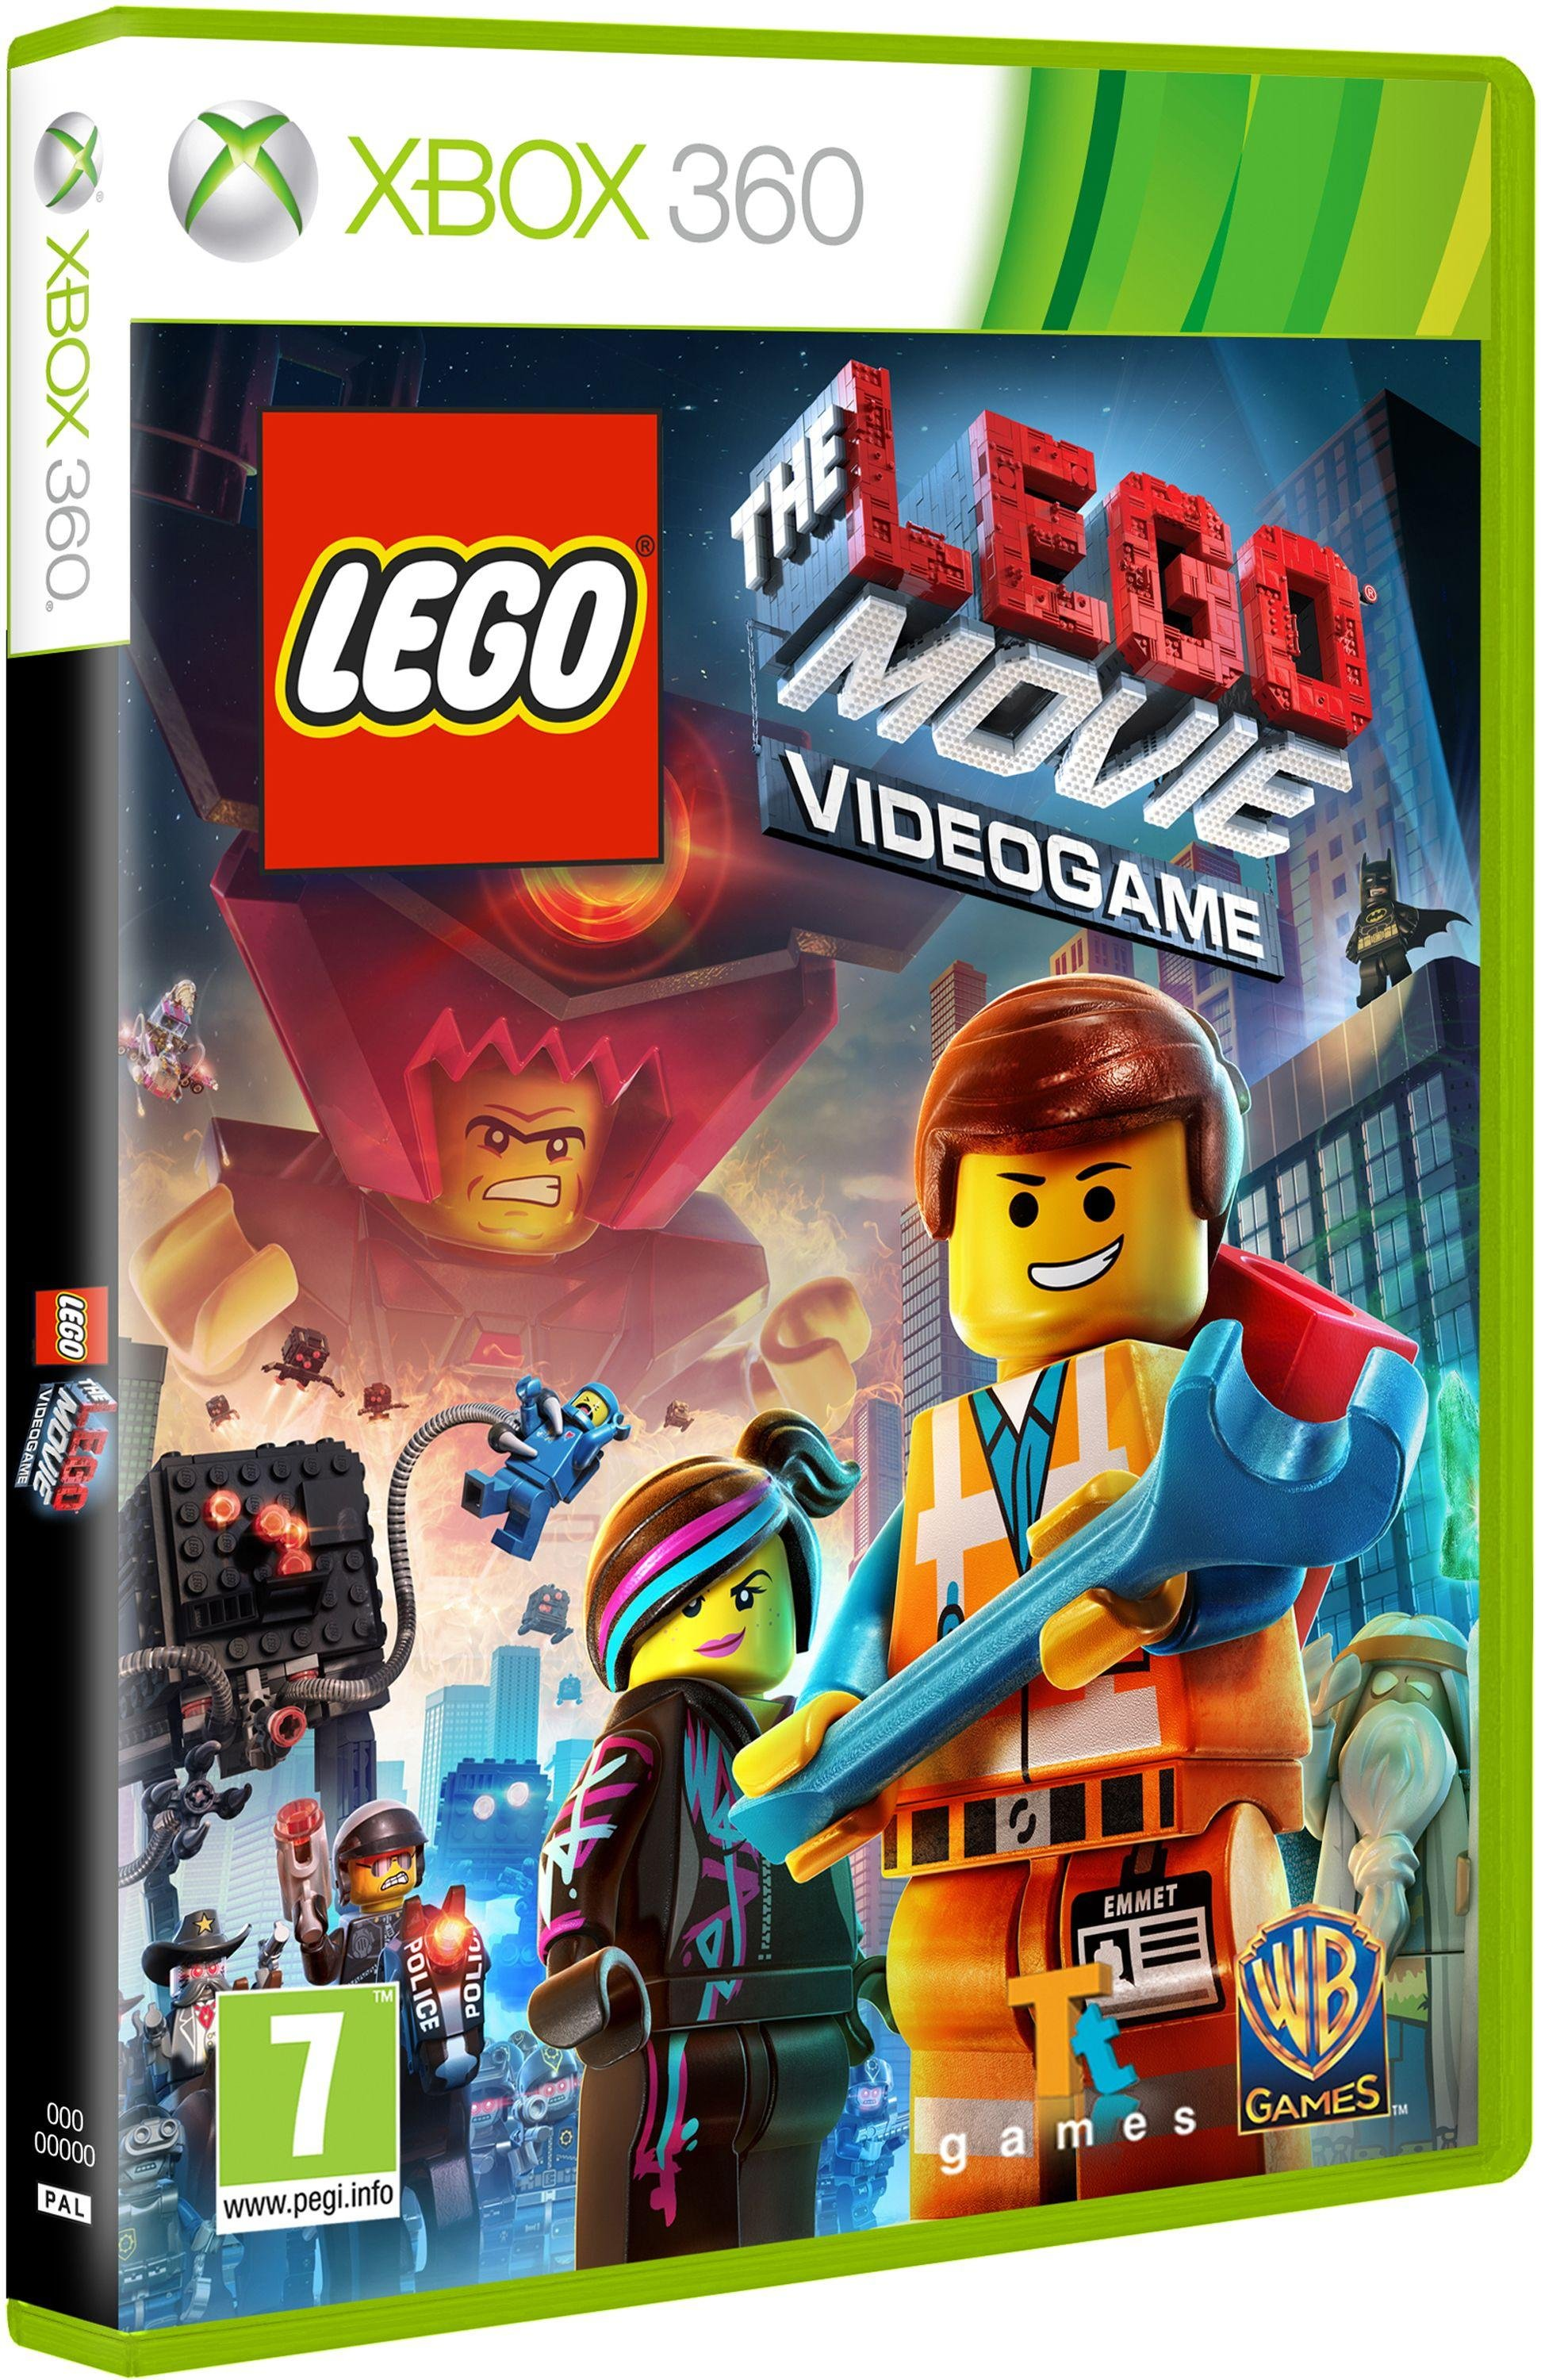 Buy LEGO Movie: The Videogame Xbox 360 Game at Argos.co.uk - Your ...